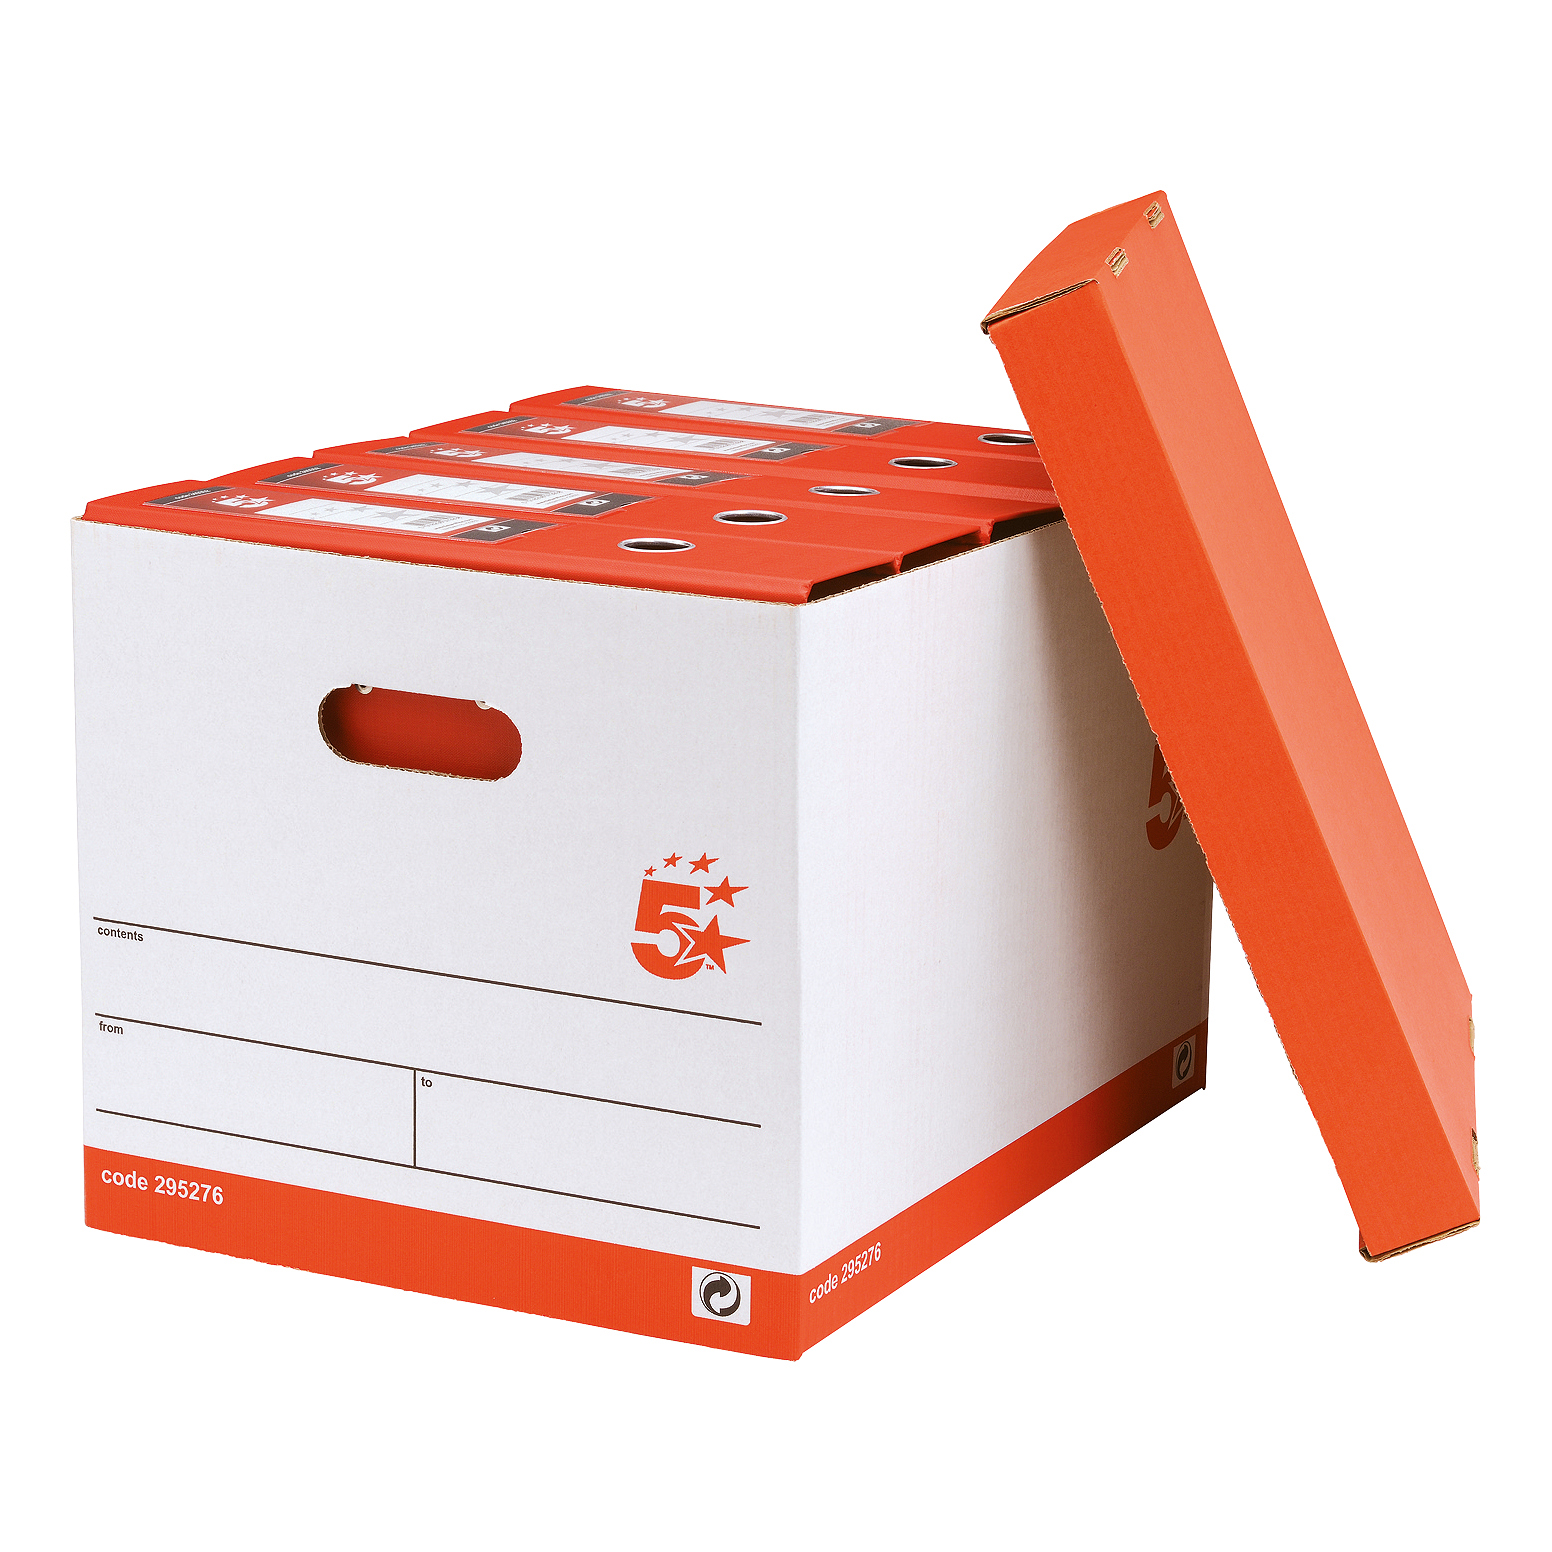 5 Star Office FSC Storage Box With Lid Self-Assembly Red & White Pack 10